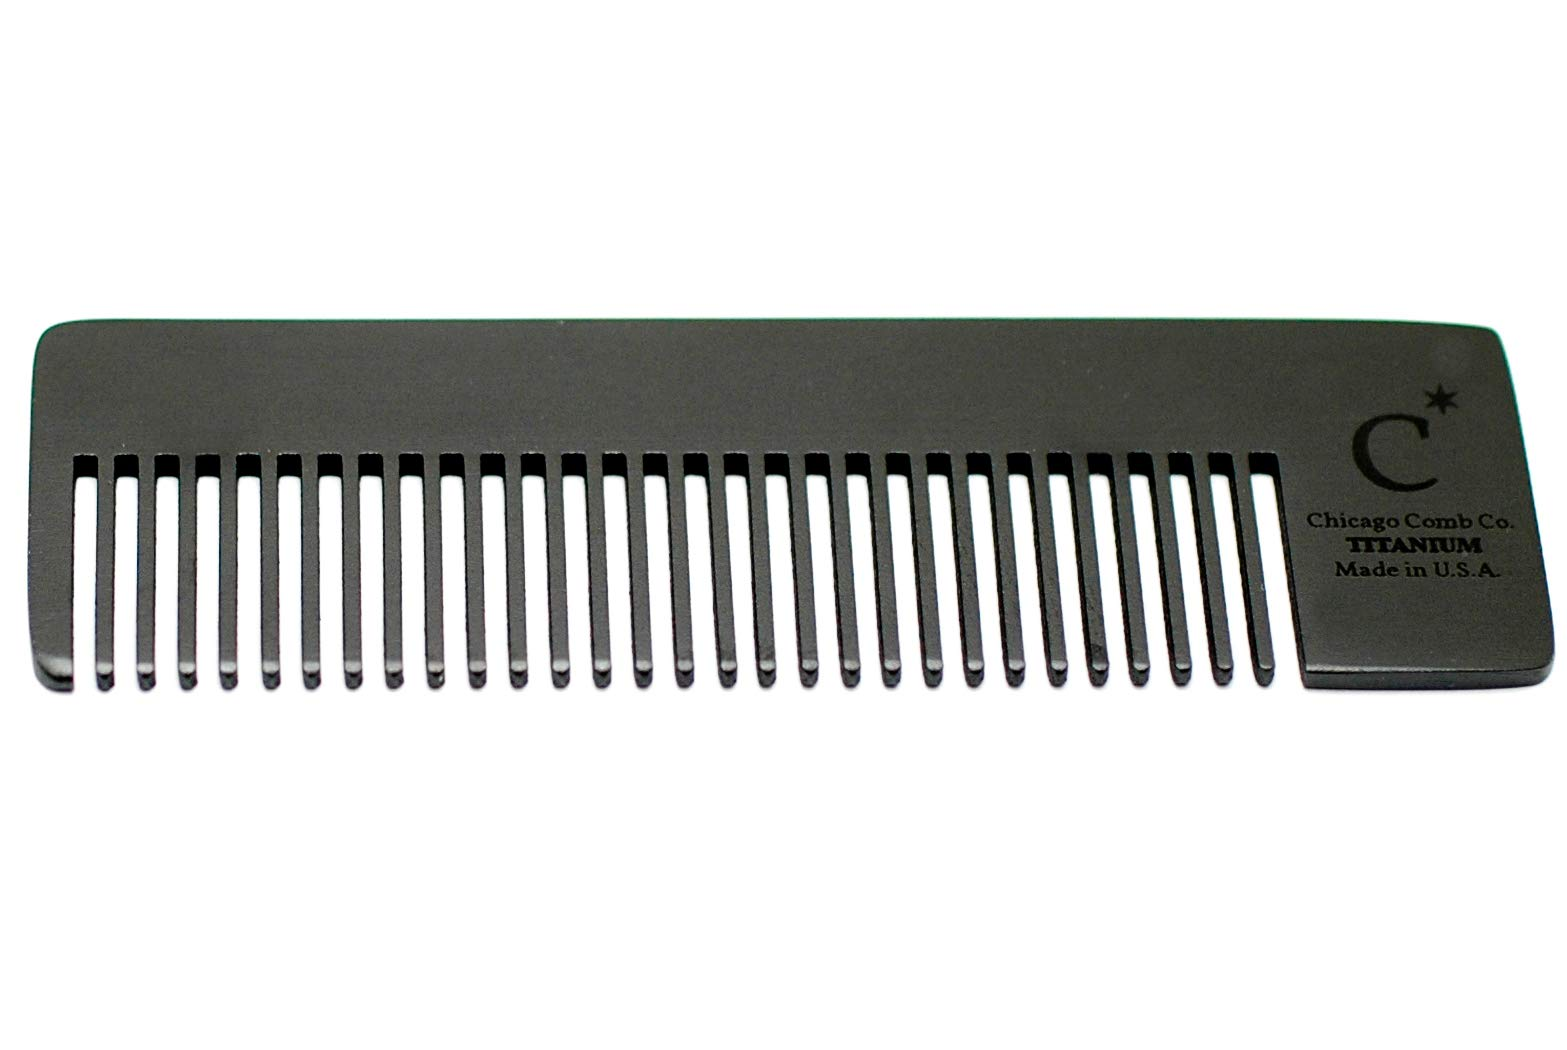 Chicago Comb Model 4 Black Titanium, Made in USA, Ultimate Daily Use Comb, Beard & Mustache, Medium-Fine Tines, Anti-Static, Ultra-Smooth, Strong, Light, 4 in. (10 cm) Long, Pure American Titanium